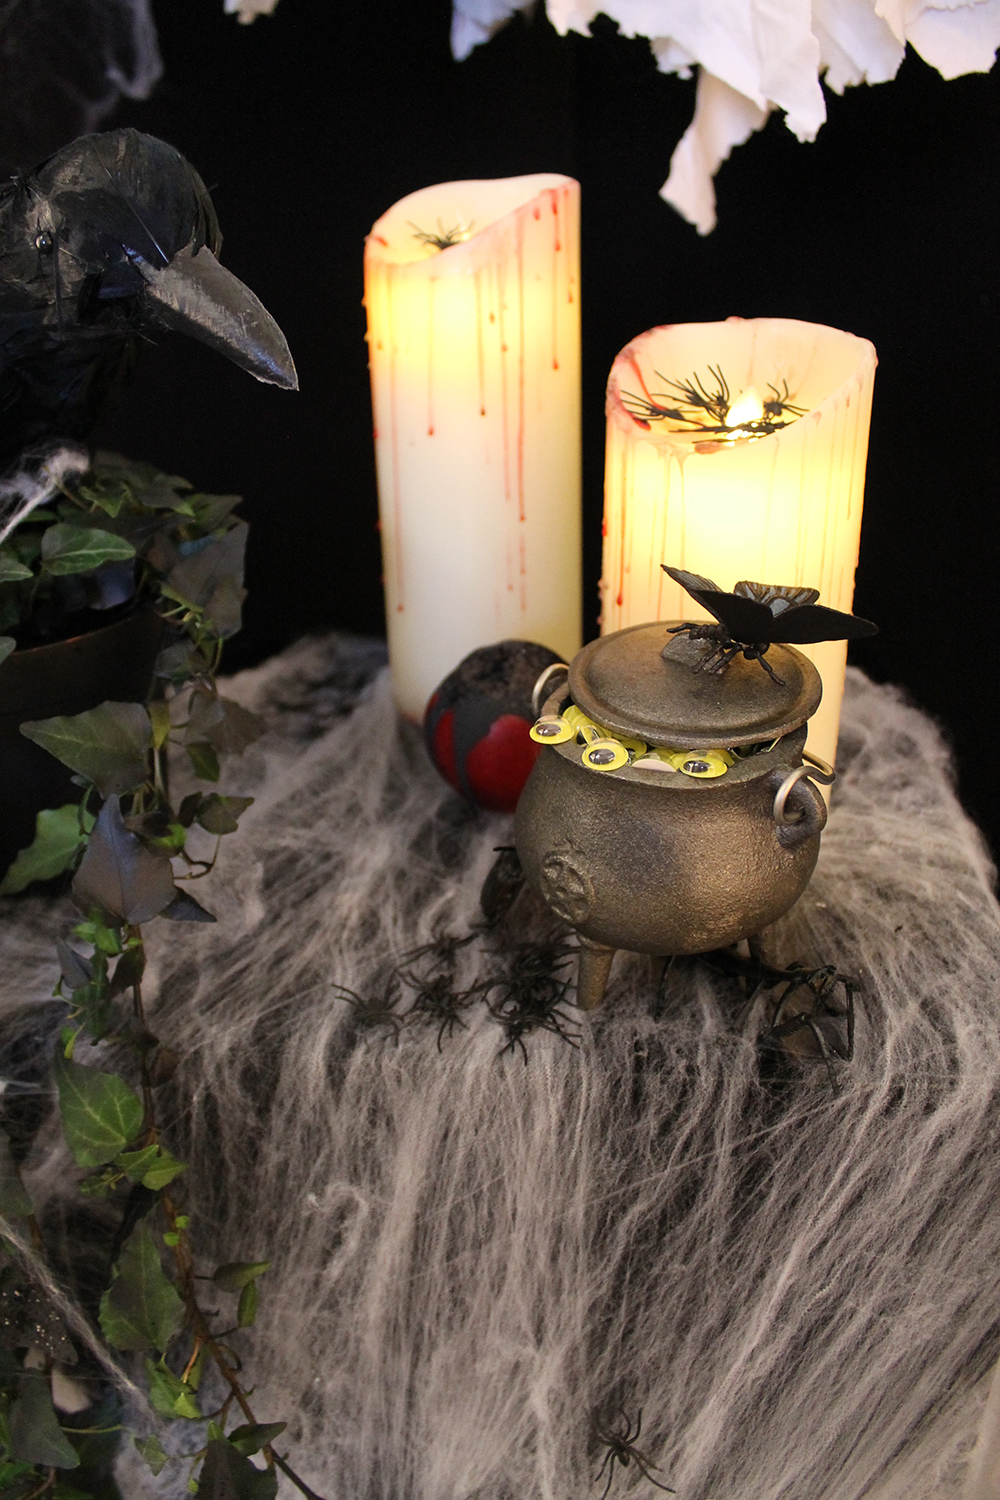 Superdrug Halloween 2016 Crow Cauldron Candles Vignette Joanna Thornhill